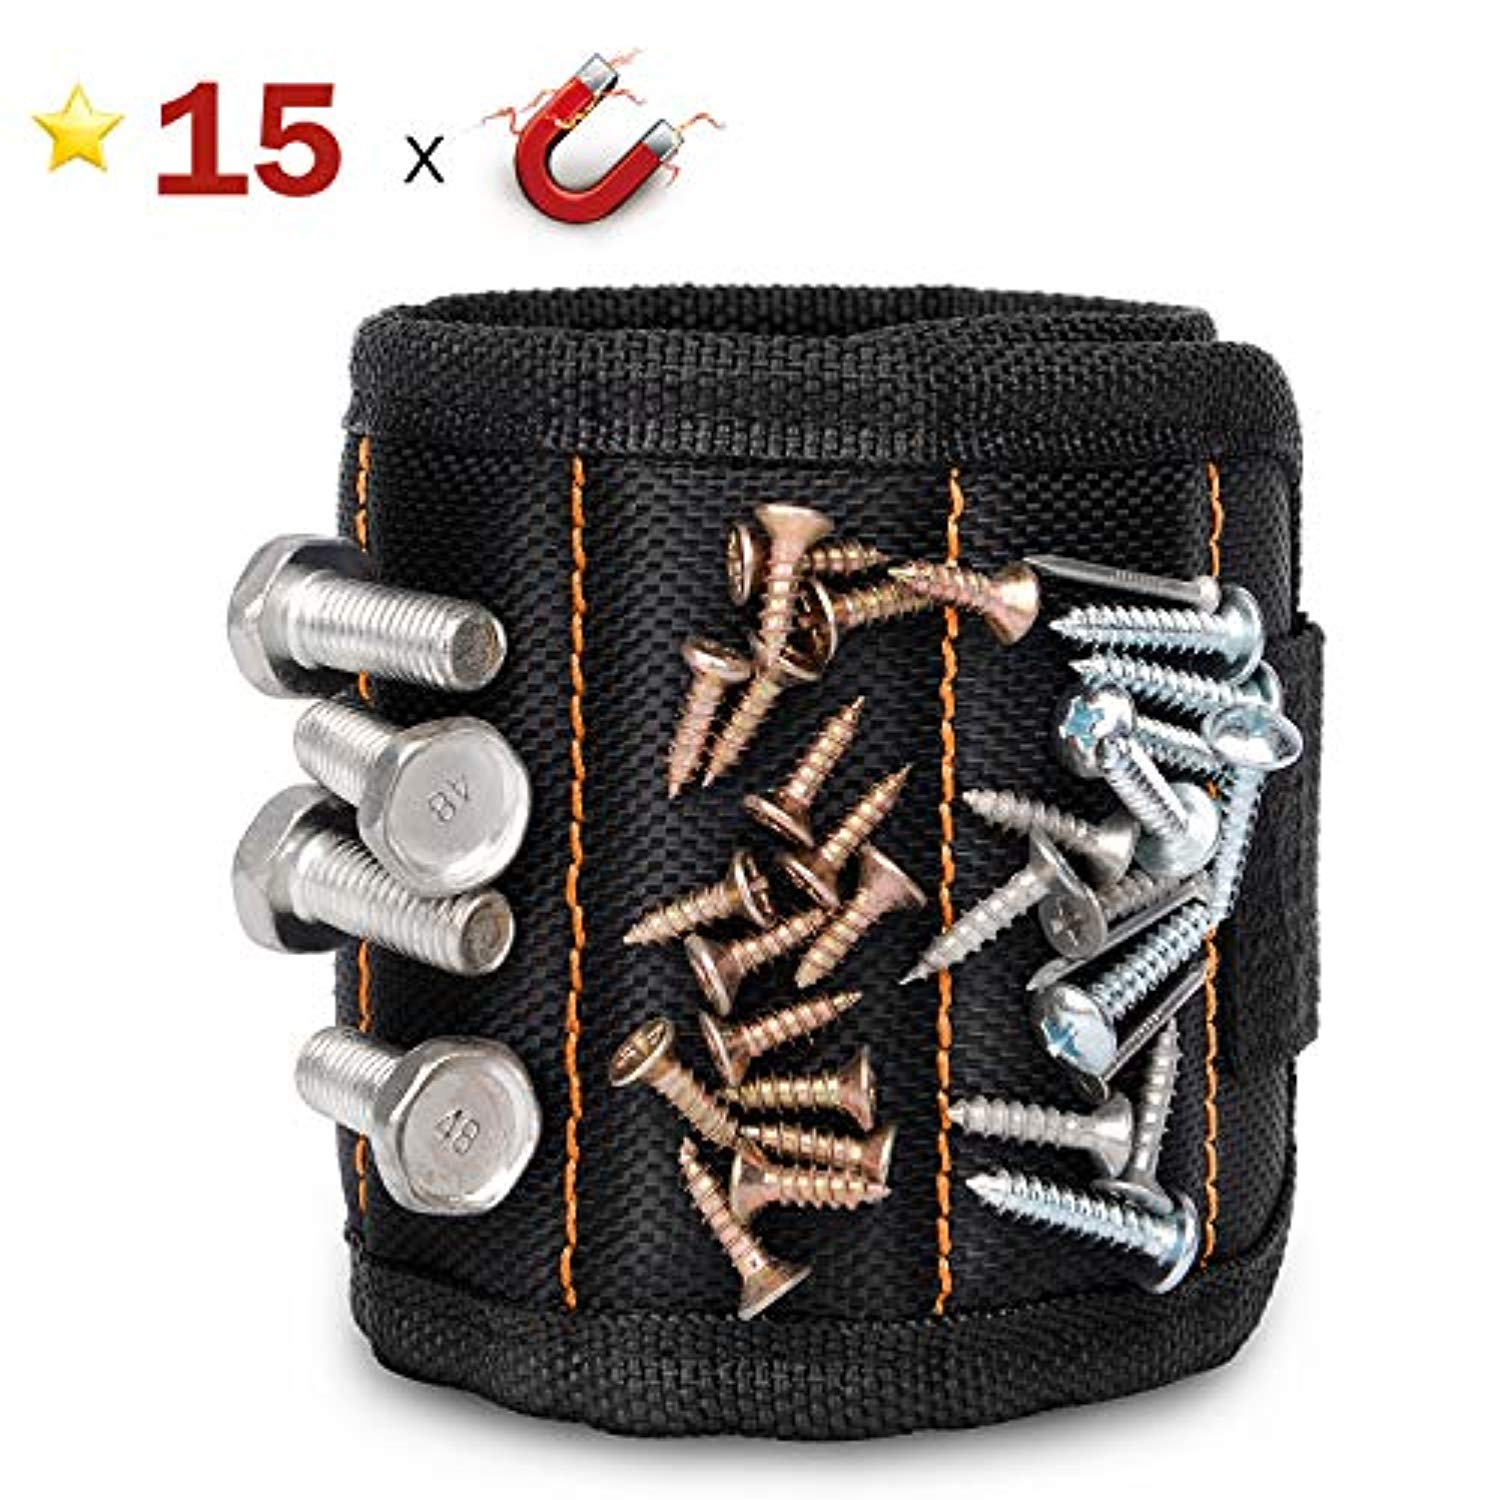 Wristband Screws Nails Drill Bits Holding Tool